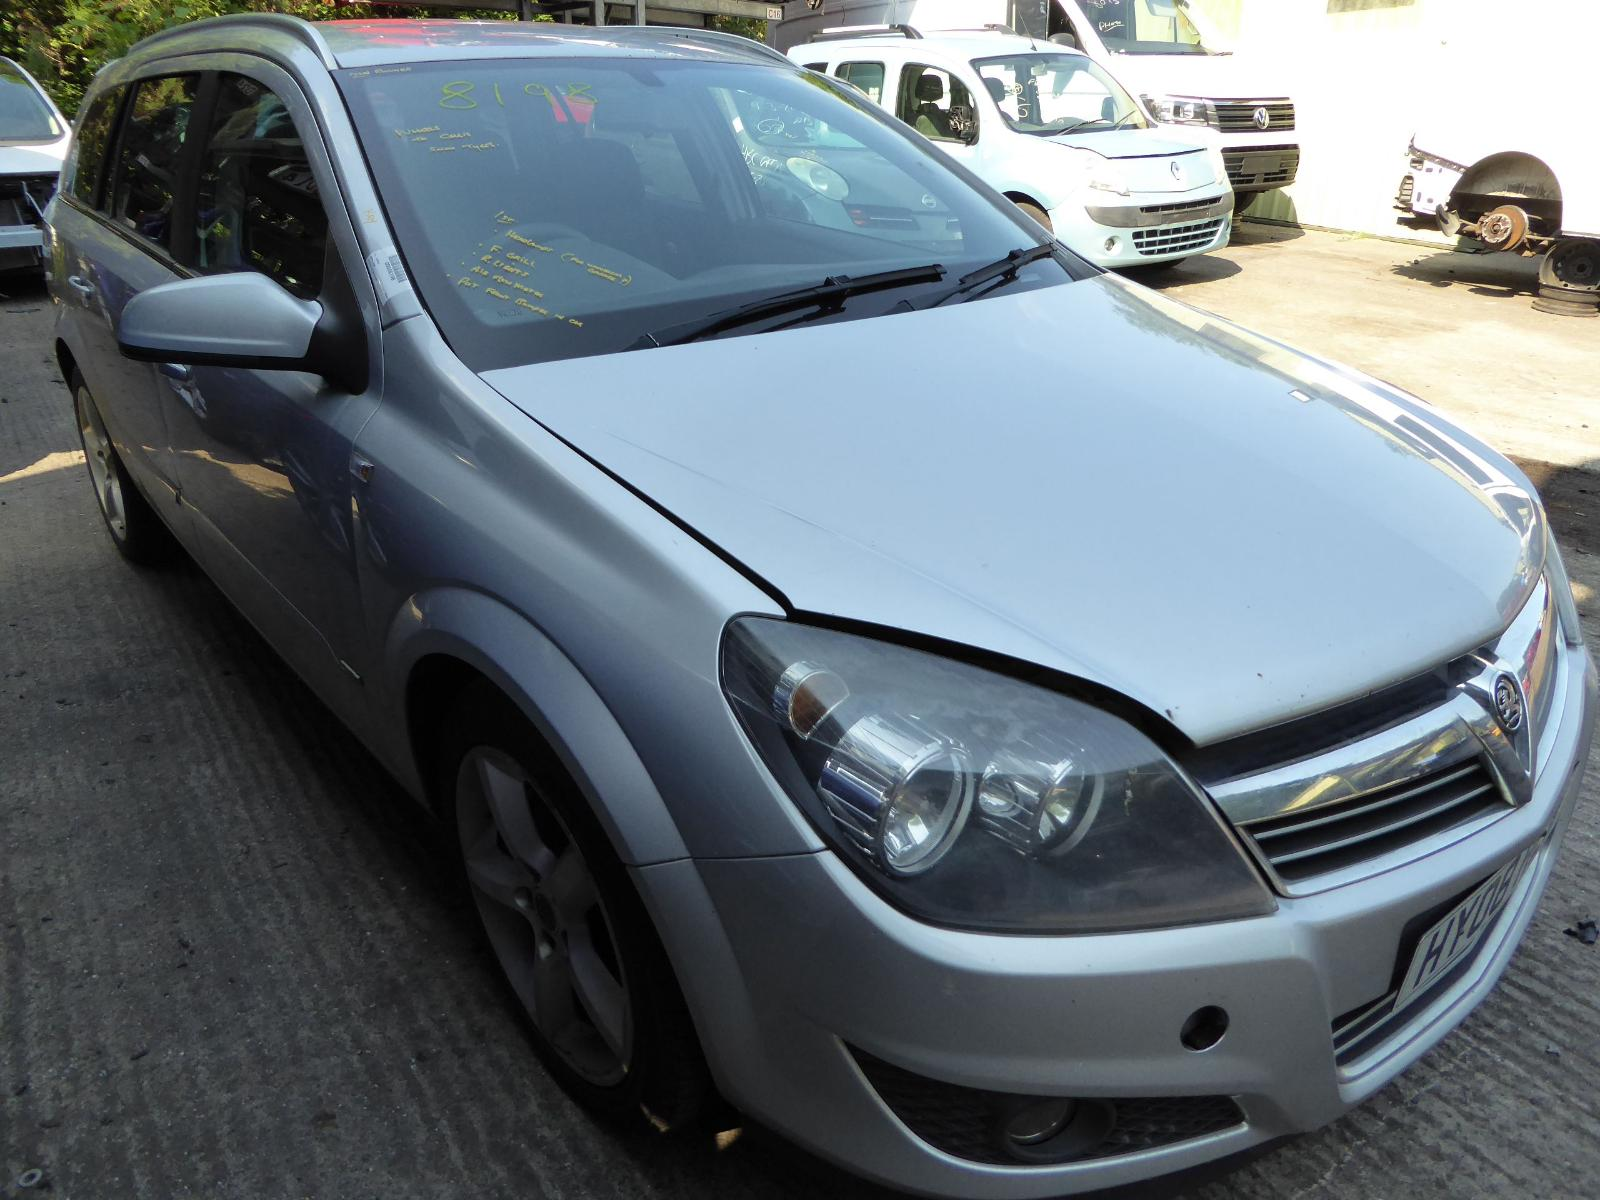 View Auto part RR Door Window VAUXHALL ASTRA 2008